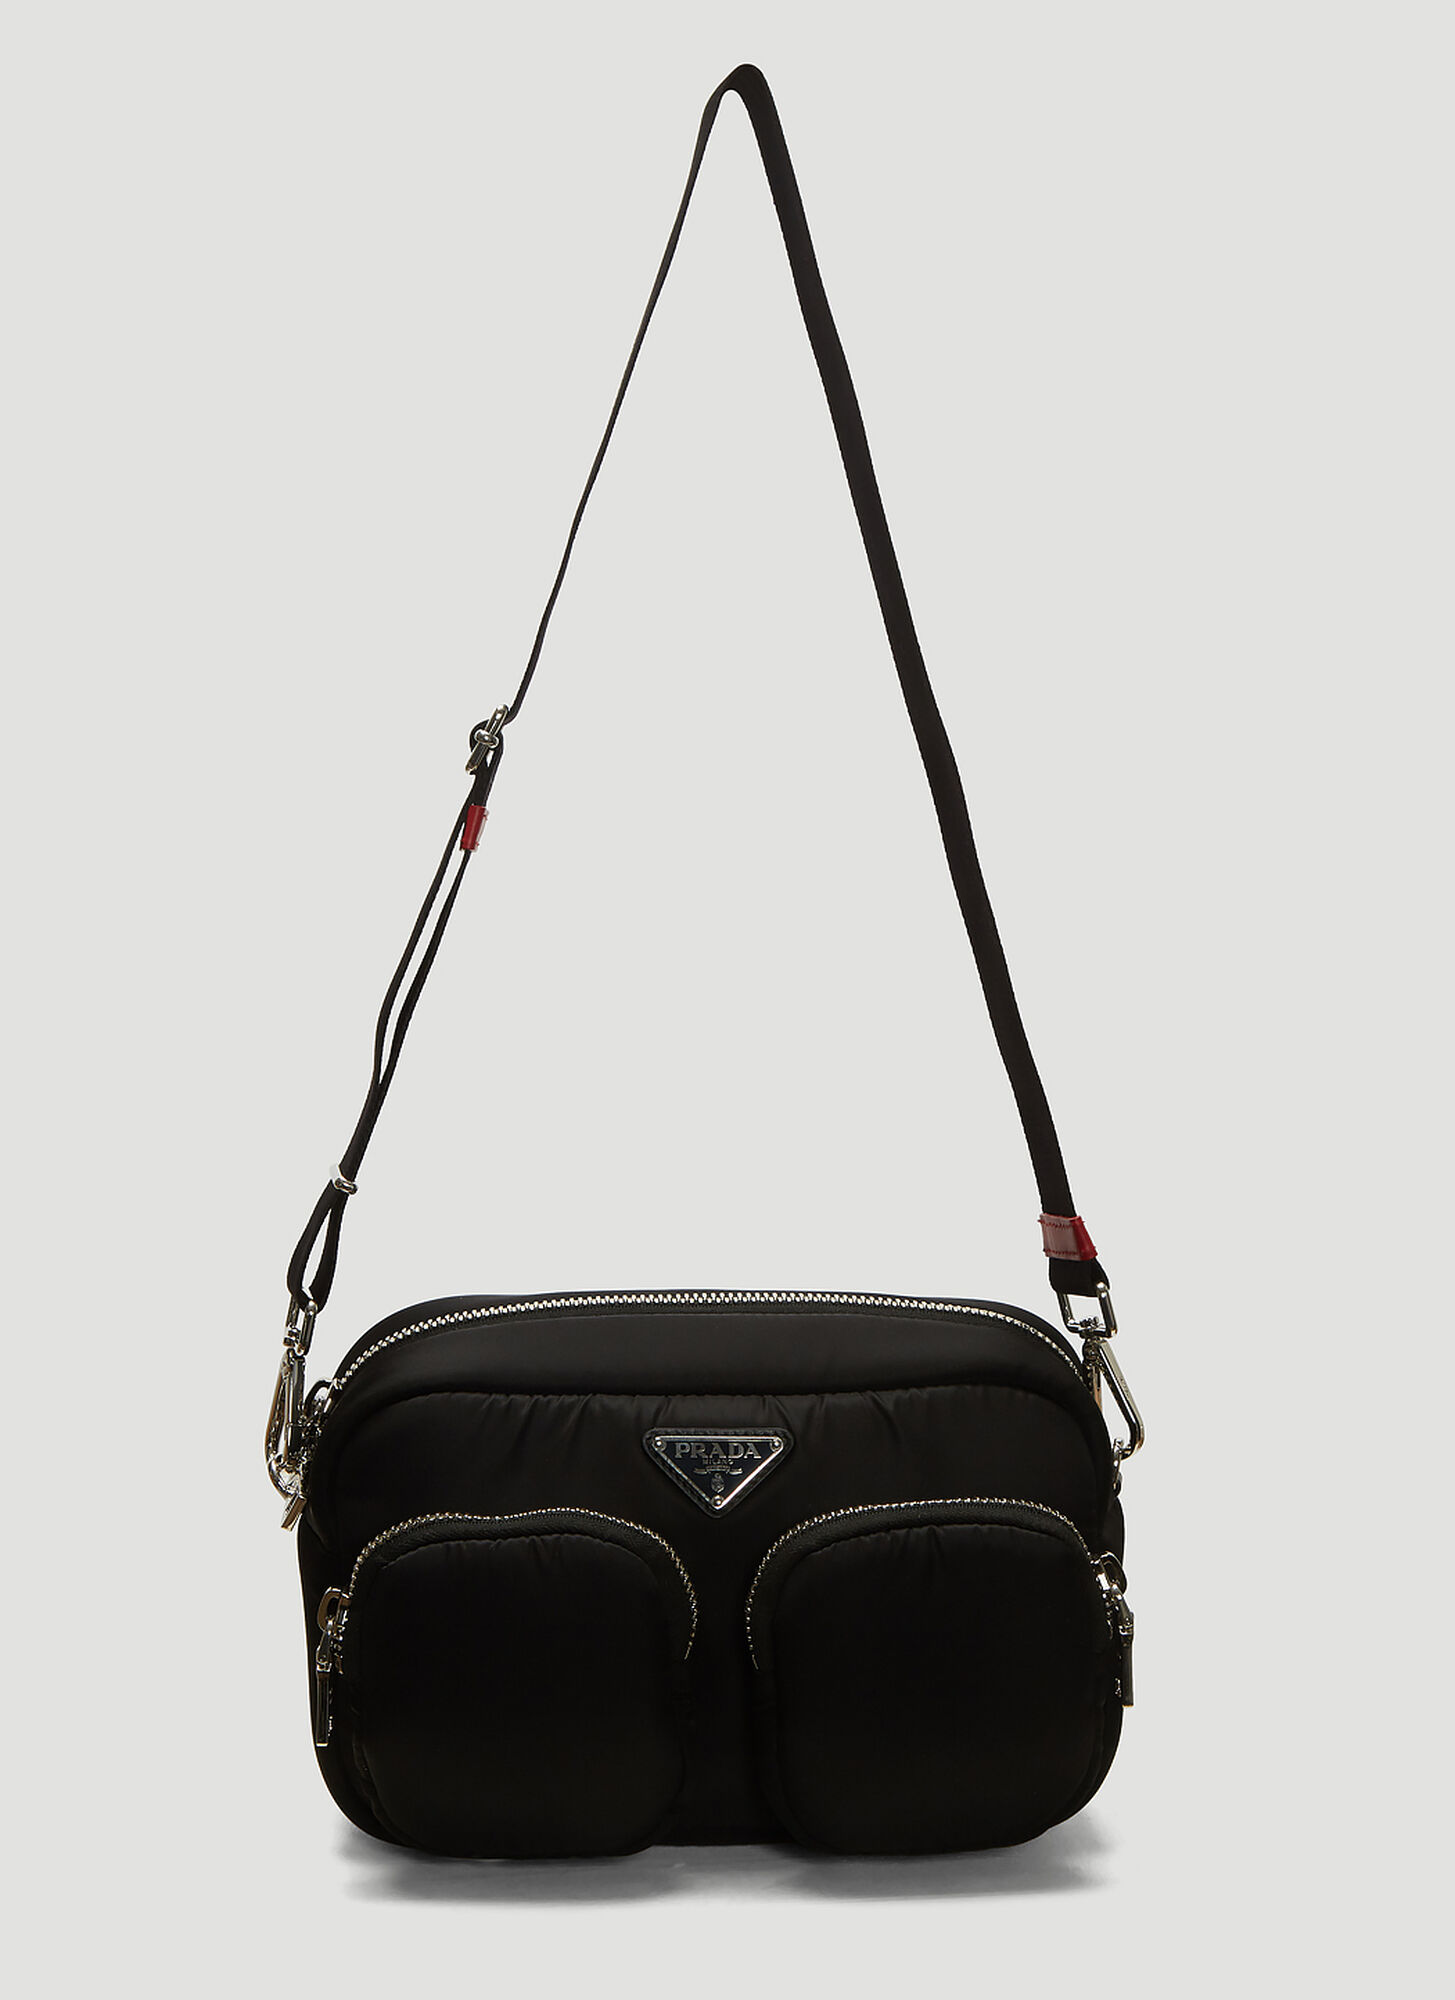 Prada Padded Nylon Shoulder Bag in Black